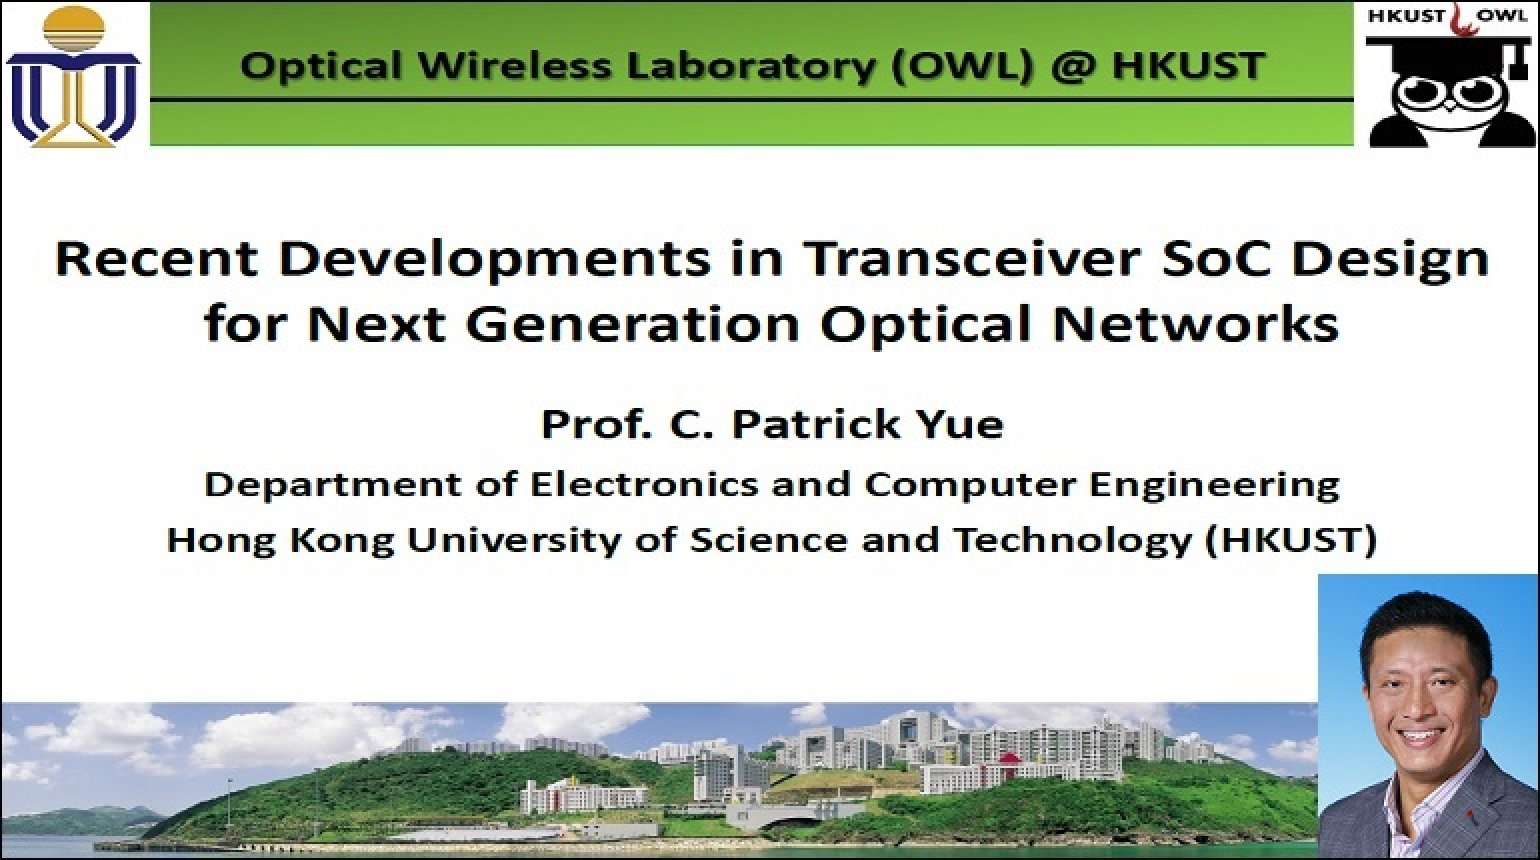 Recent Developments in Transceiver SoC Design for Next Generation Optical Networks Video